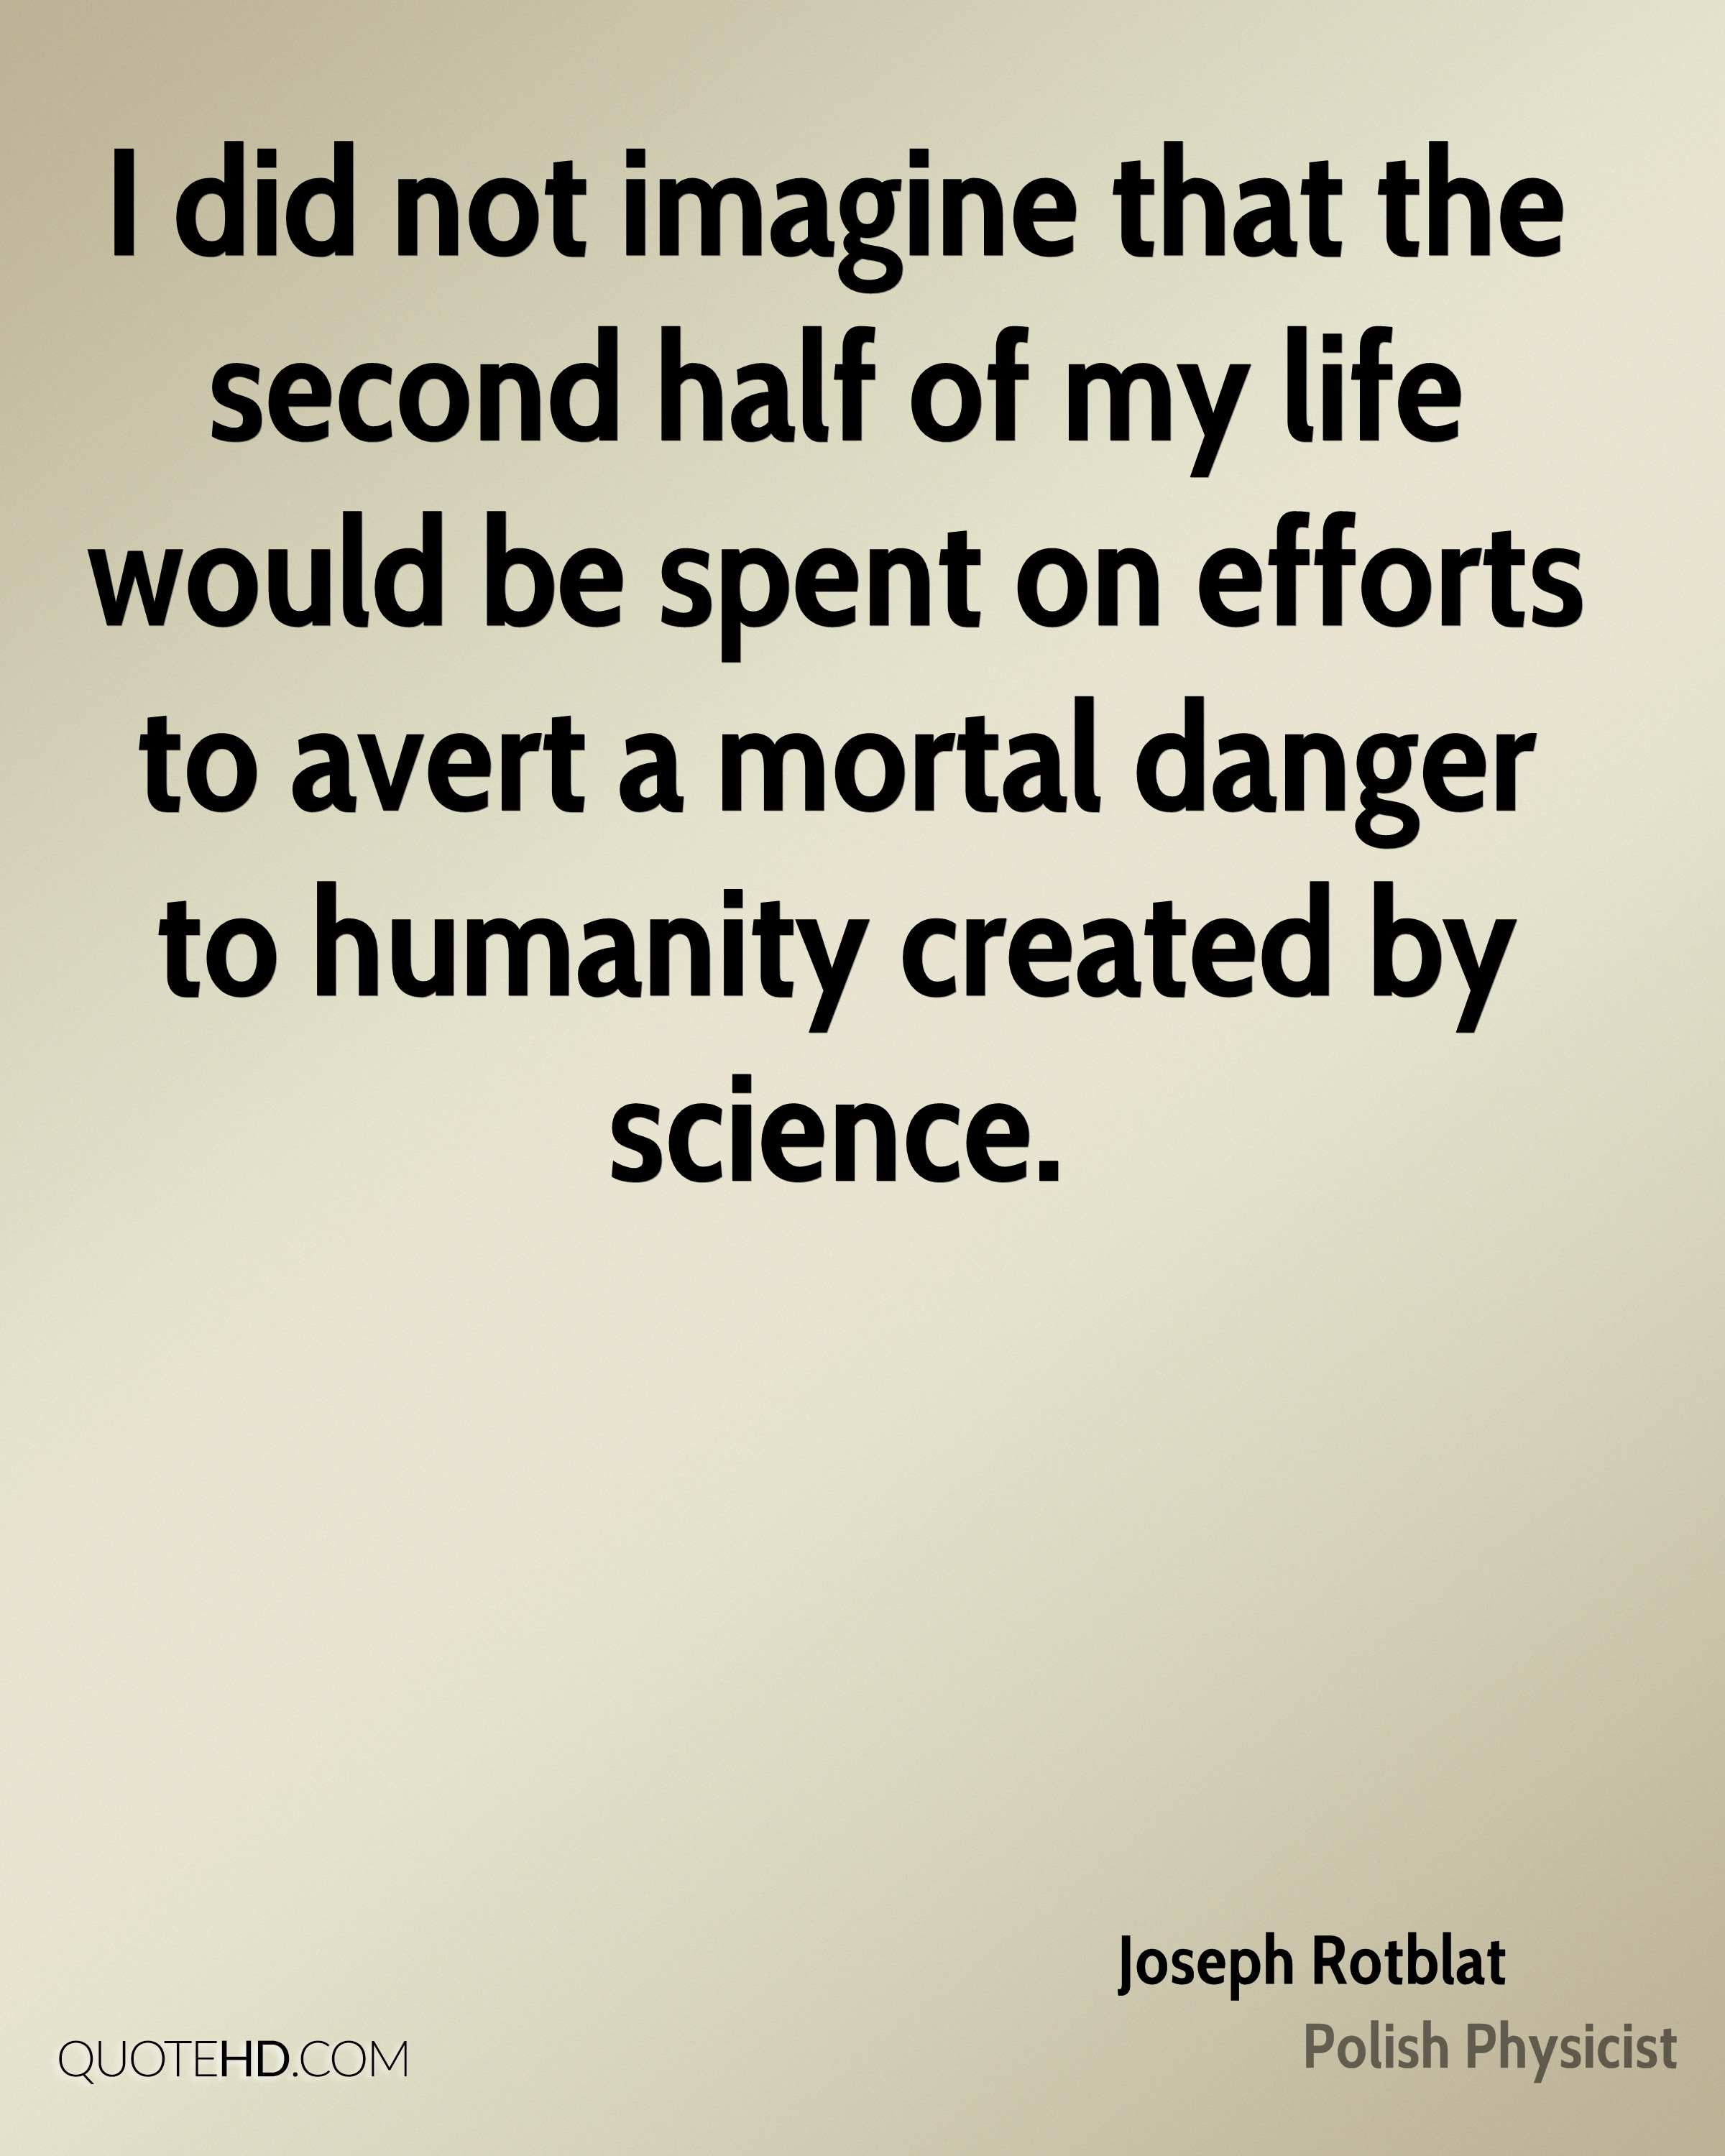 I did not imagine that the second half of my life would be spent on efforts to avert a mortal danger to humanity created by science.